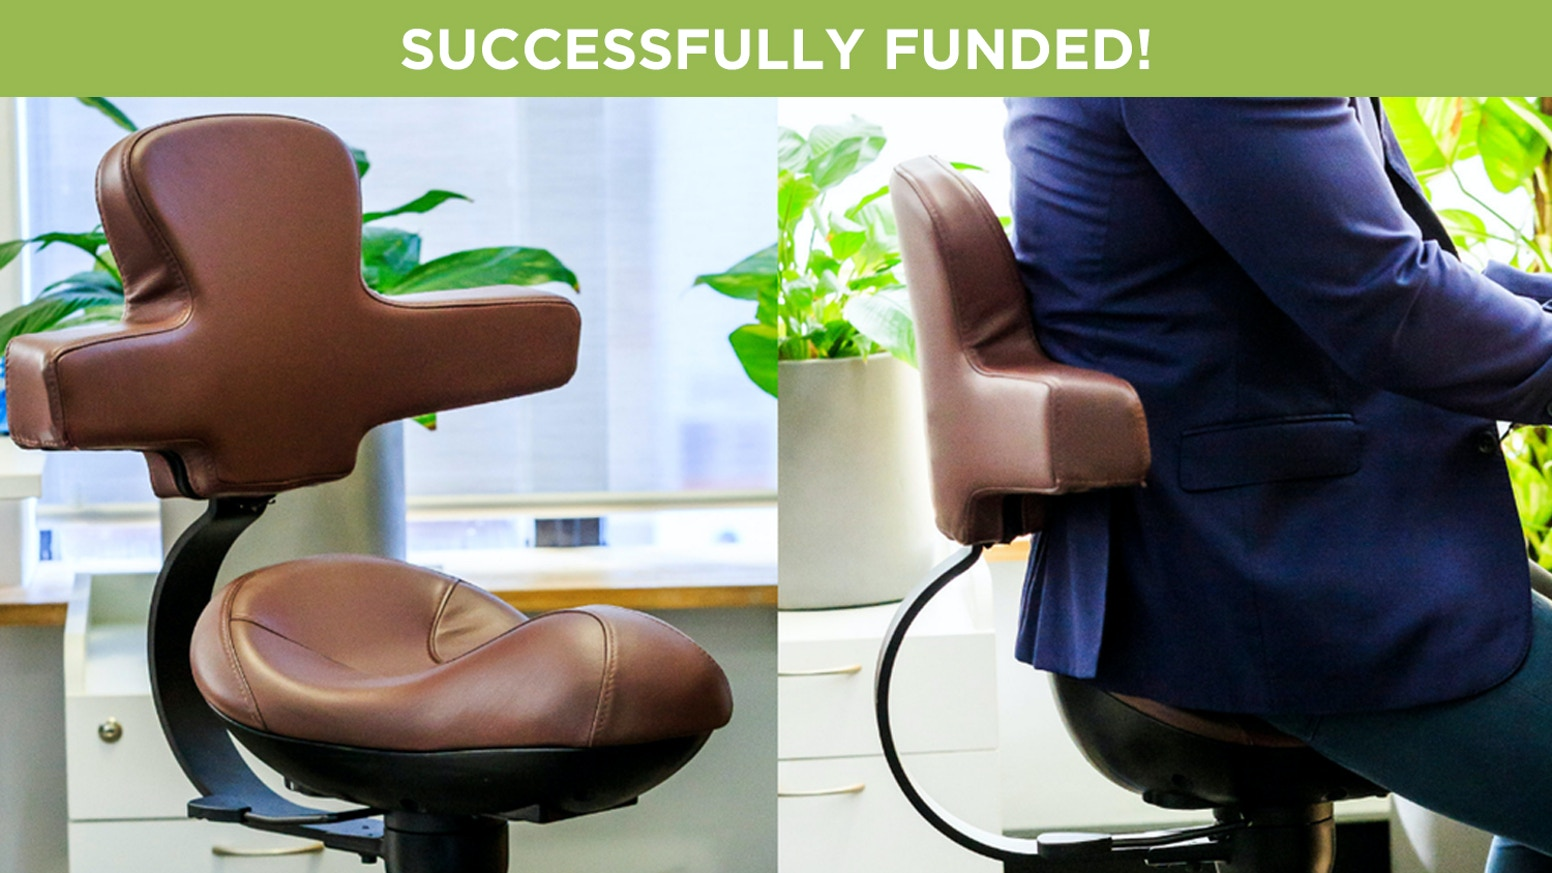 Designed by a chiropractor, these chairs have a unique, contoured saddle shape that will keep your spine in the perfect seated position